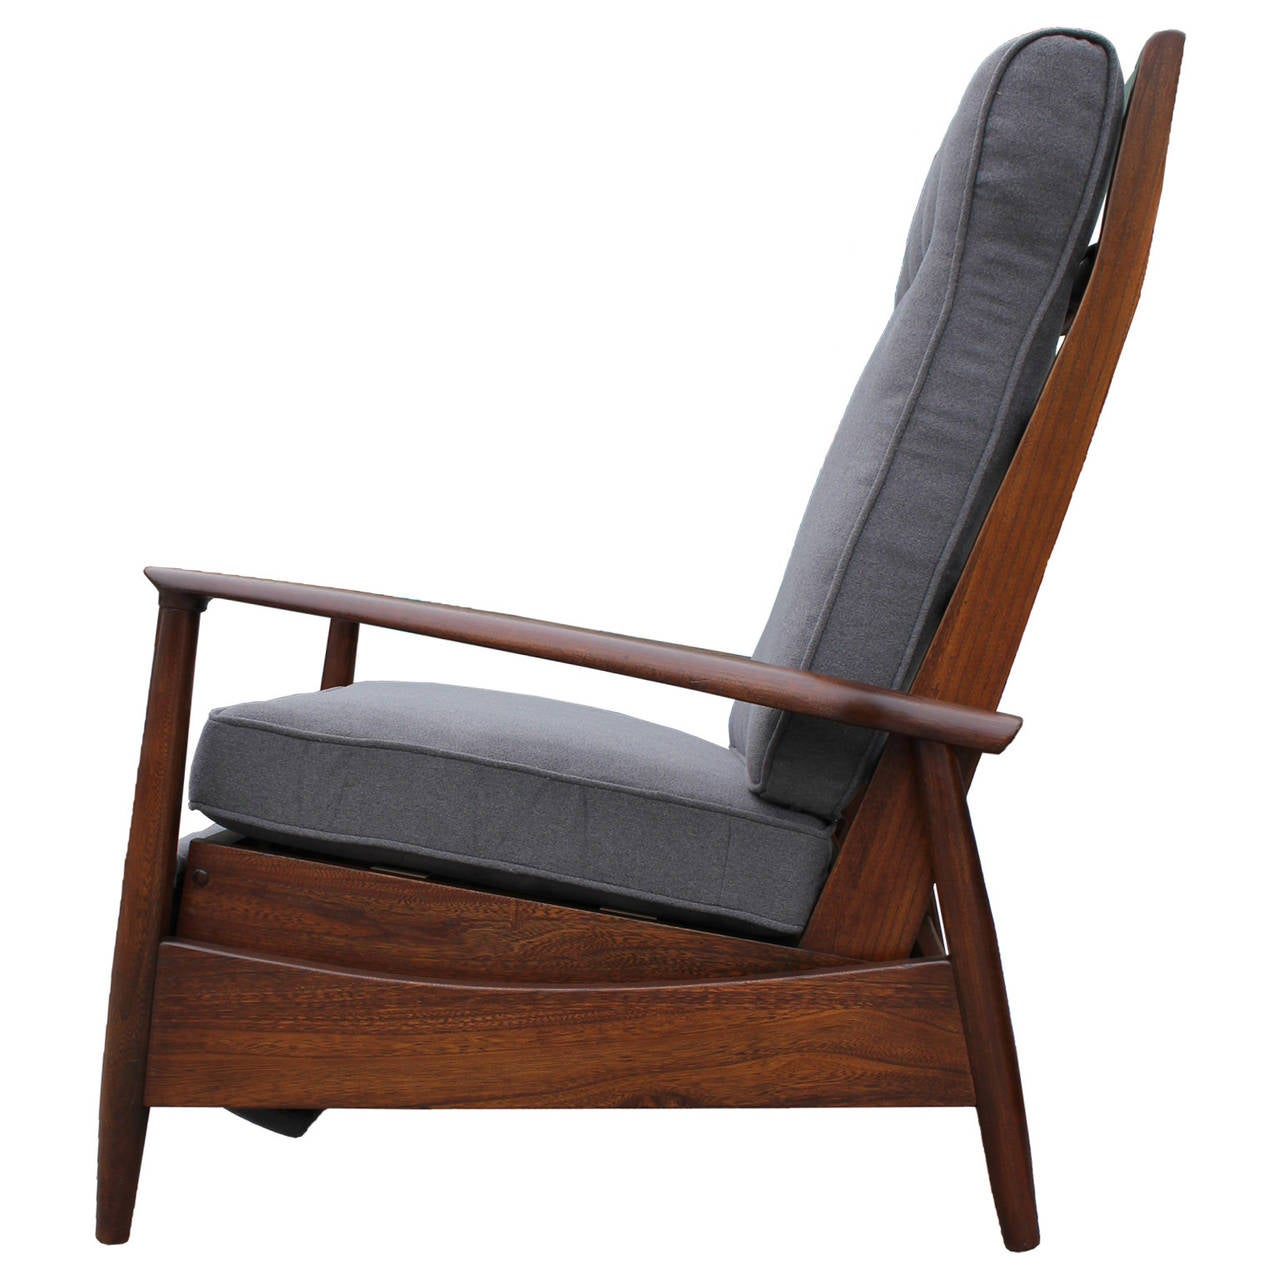 Scandinavian Reclining Lounge Chair 3  sc 1 st  1stDibs : danish recliner chair - islam-shia.org